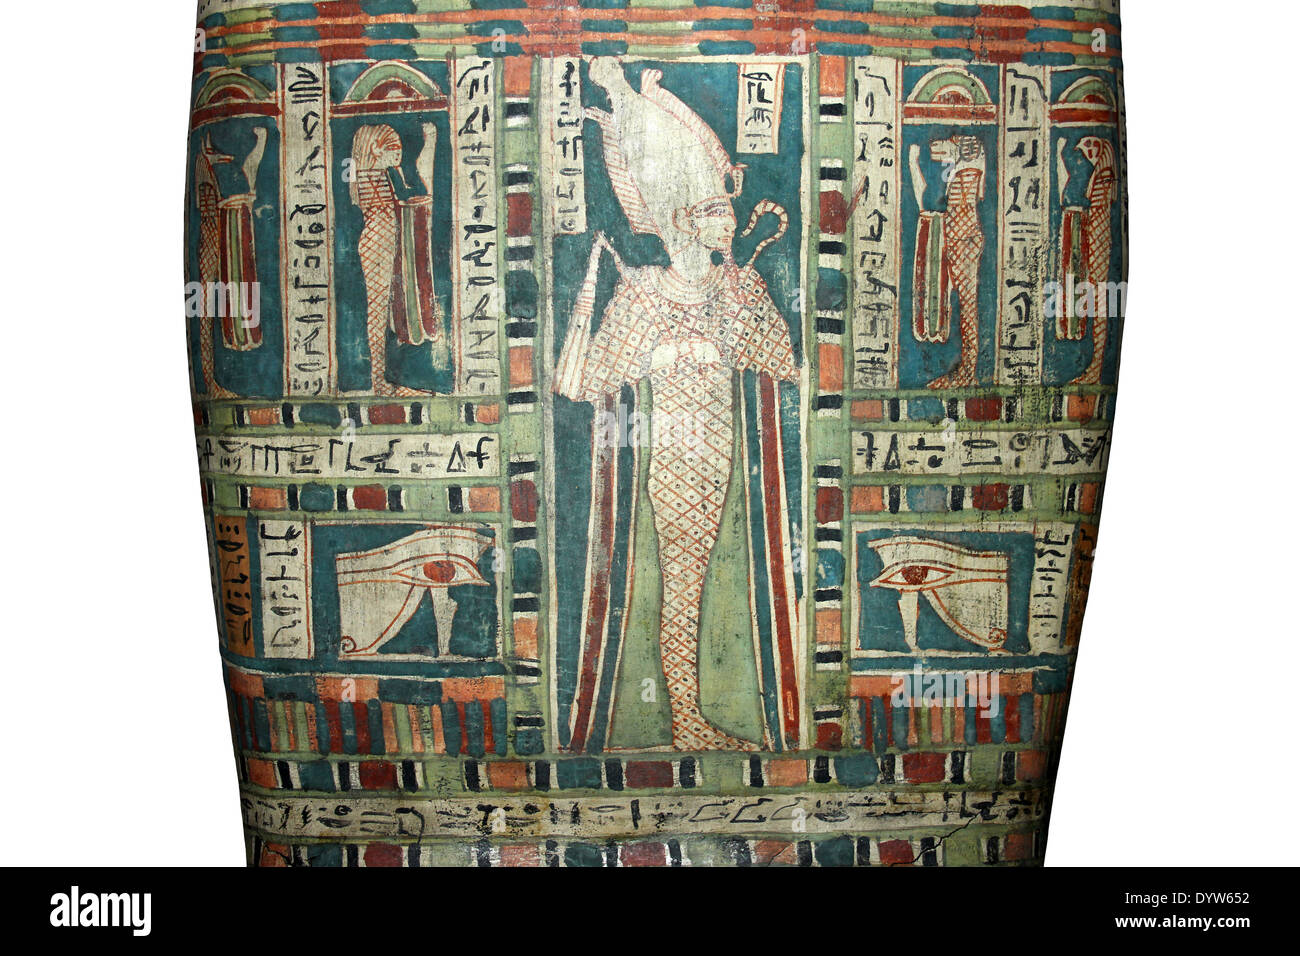 Painted Detail On The Lid Of An Egyptian Sarcophagus - Stock Image